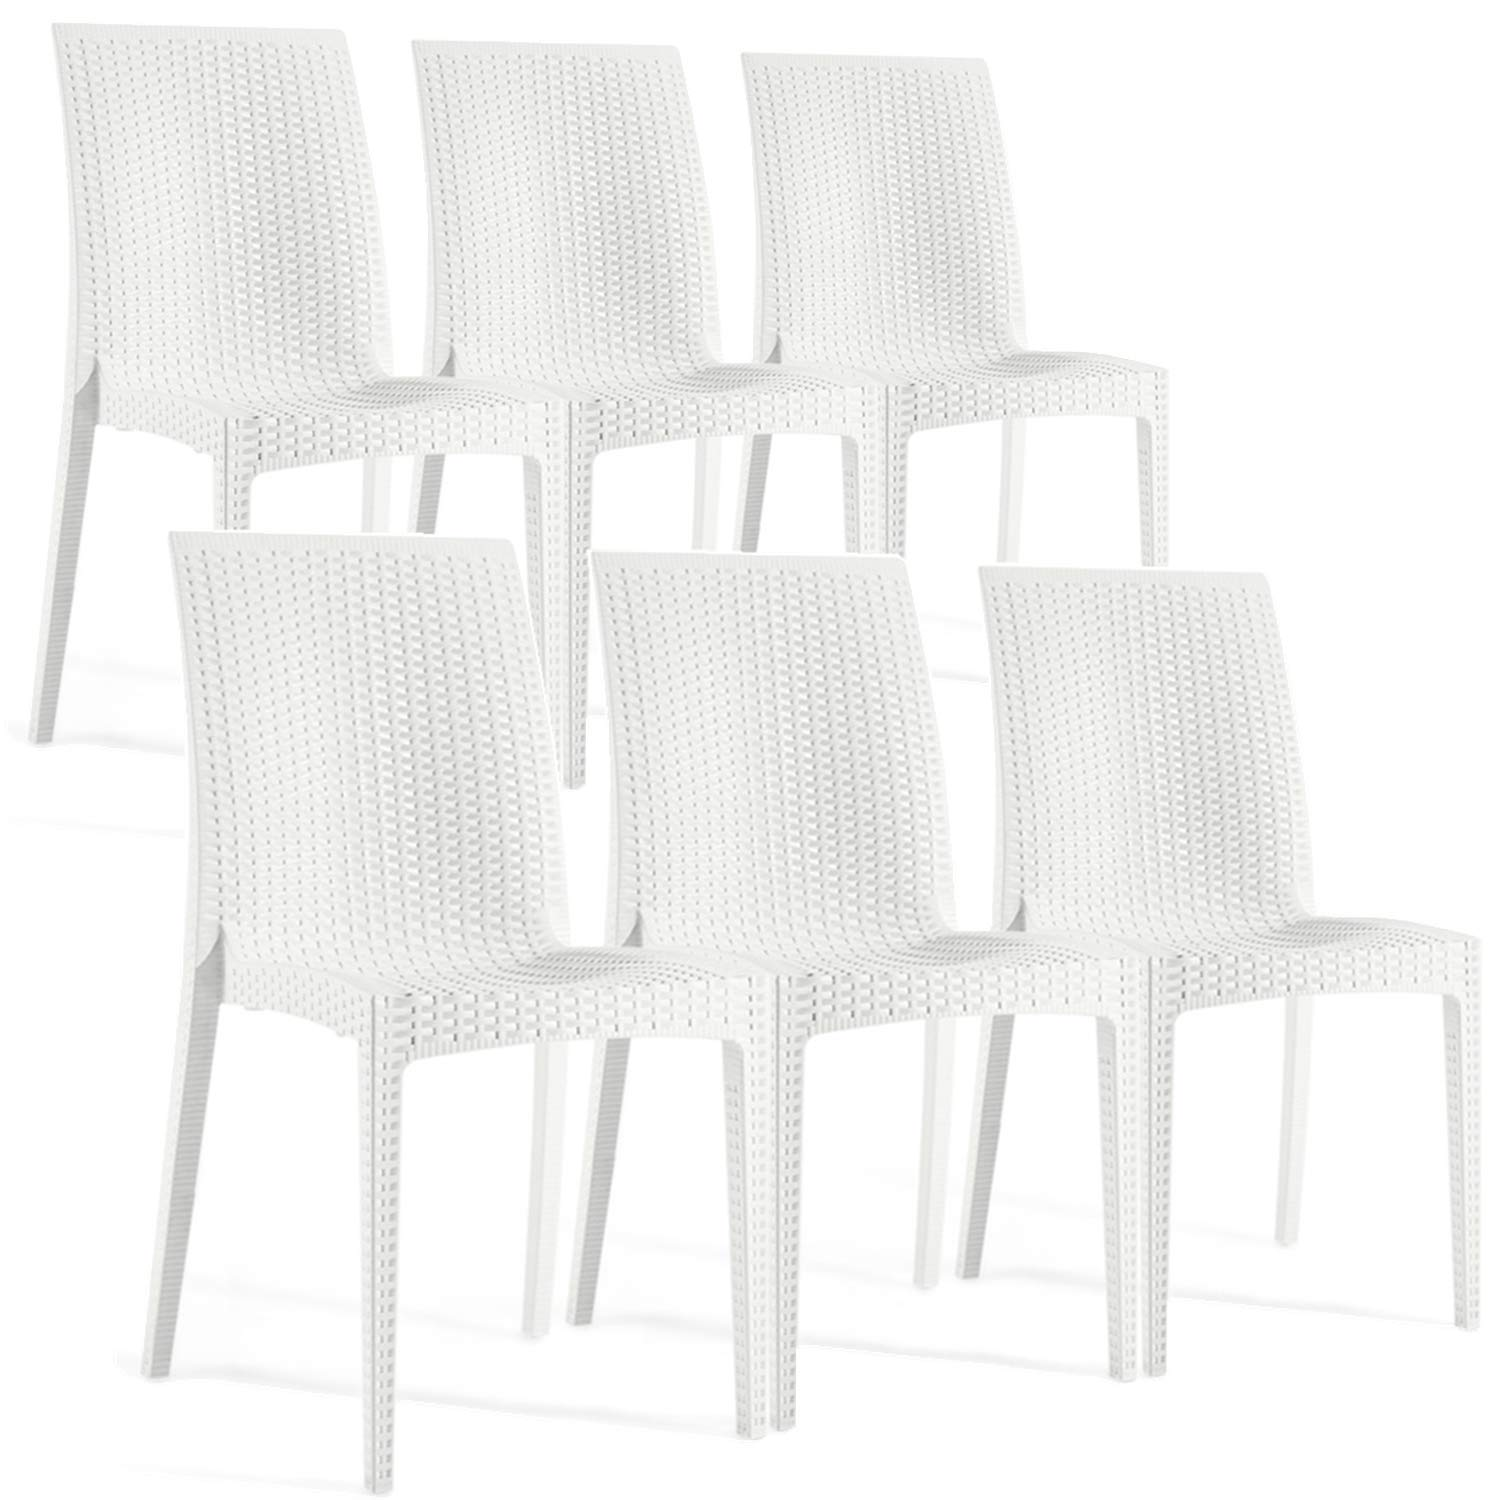 Furgle Patio Dining Chairs,Set of 6 Outdoor PE Rattan Wicker White Chairs UV-Resistant Balcony Chairs for Beach, Backyard, Porch, Garden, Poolside,Lawn 6 PCS Chairs